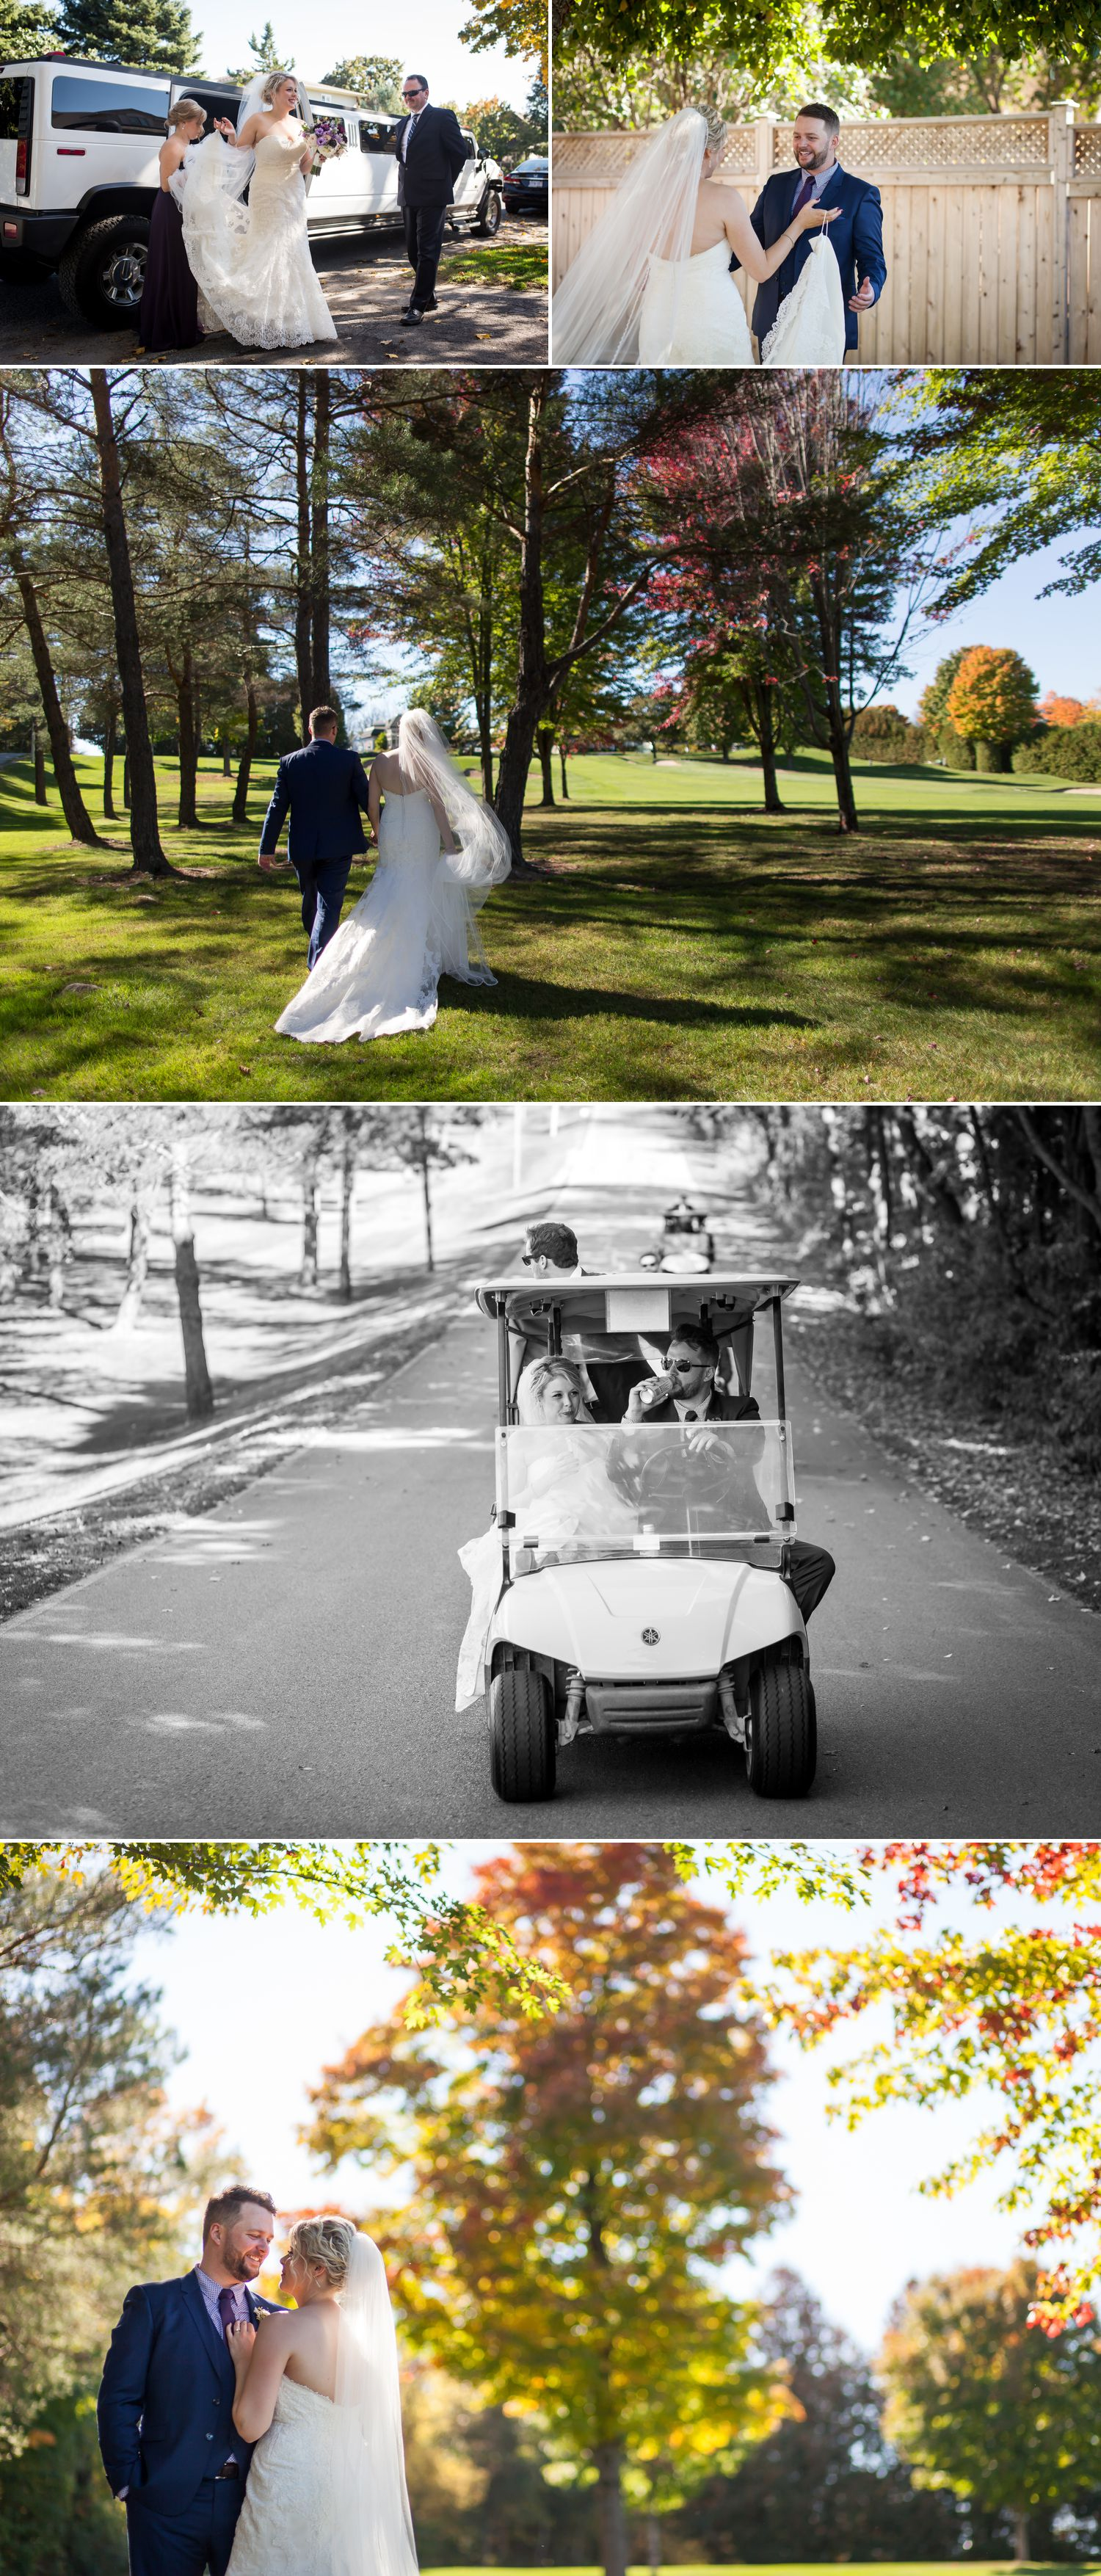 The bride and groom during their first look and heading to their venue